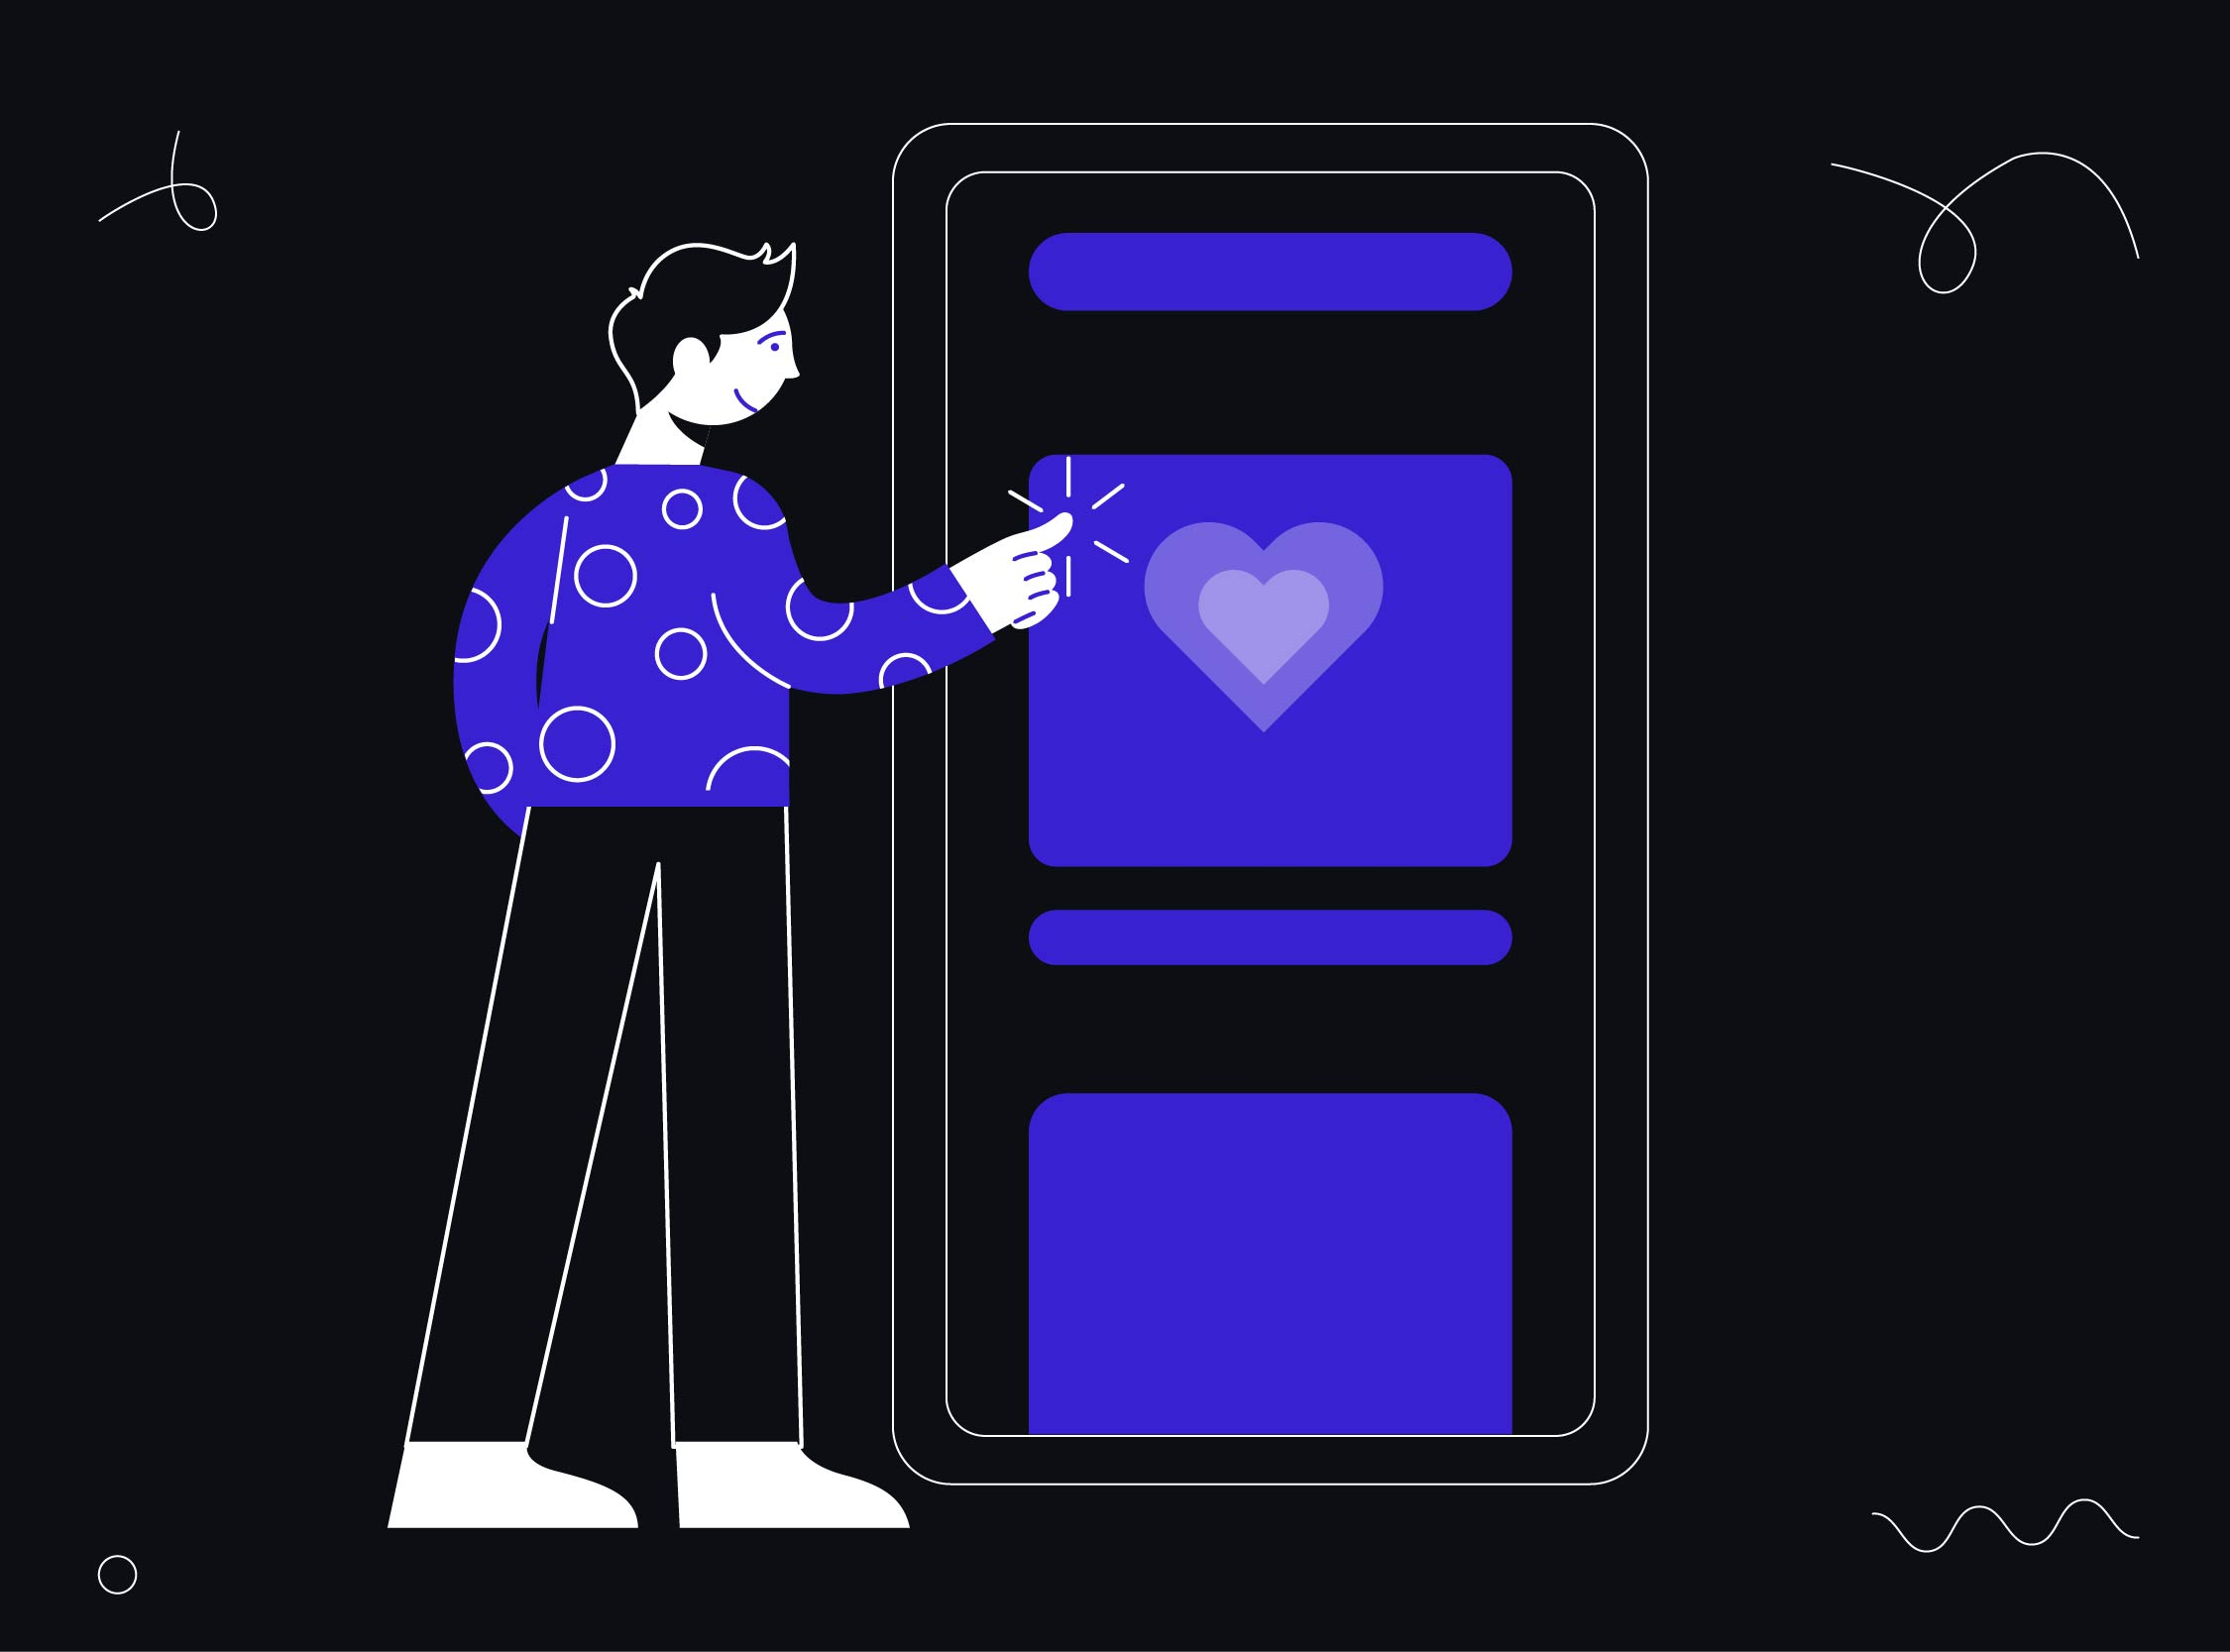 How to Use Animation for an Improved User Experience